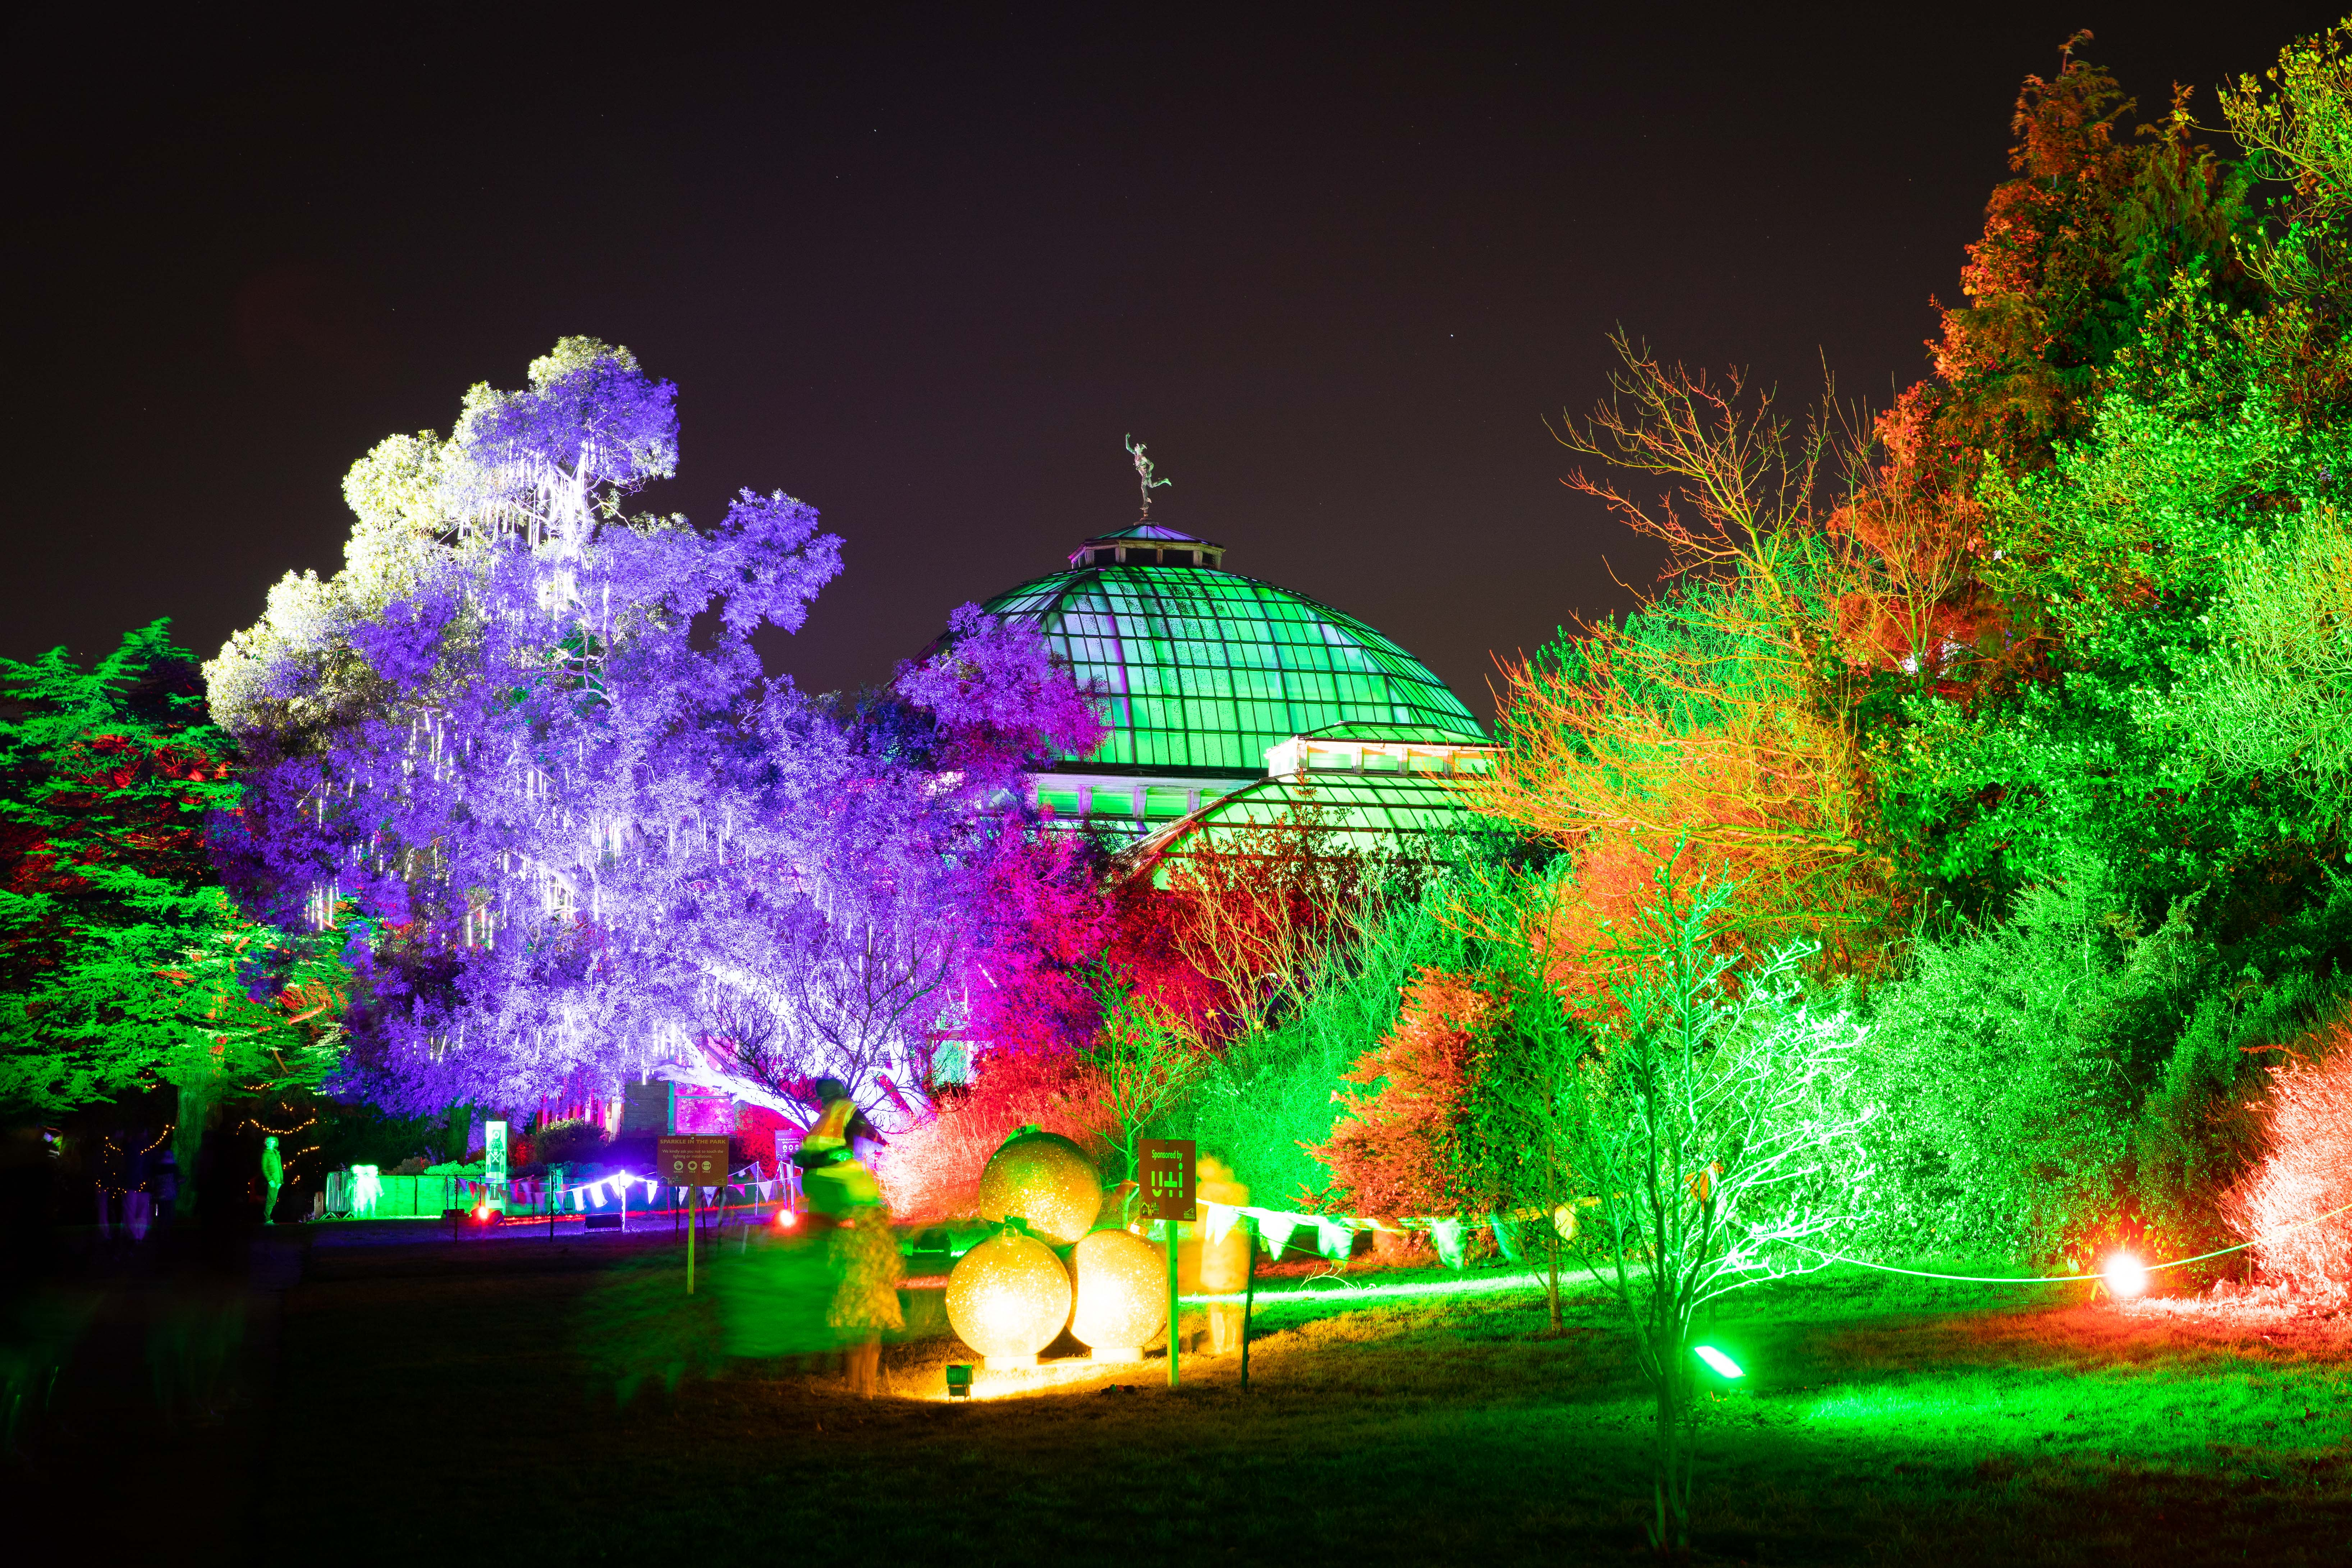 Winter garden at sparkle in the park lit with colourful lights.